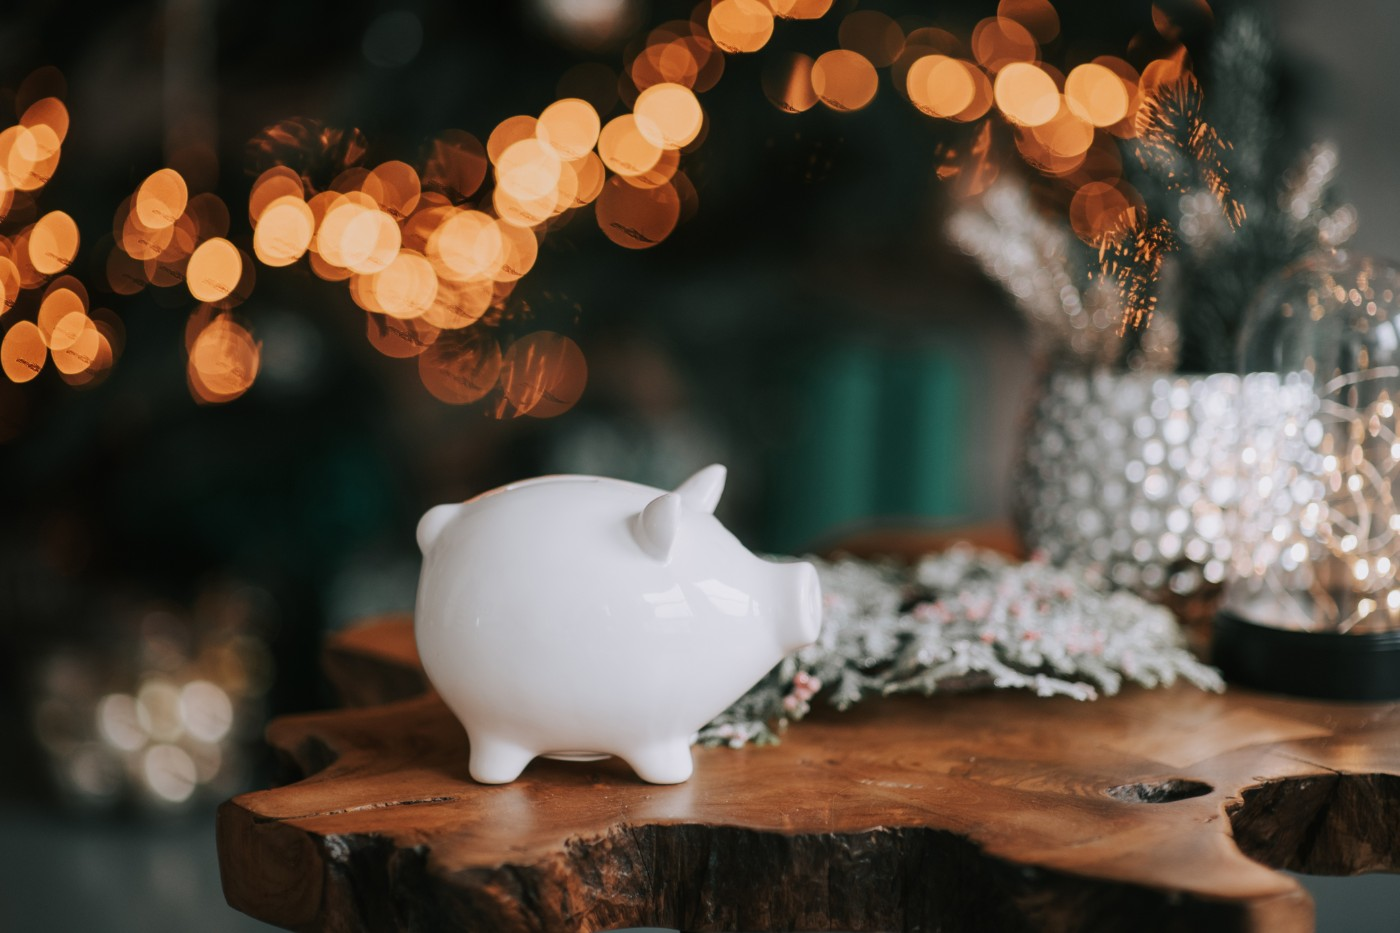 https://tickertapecdn.tdameritrade.com/assets/images/pages/md/piggy bank: ideas for spending or saving your bonus